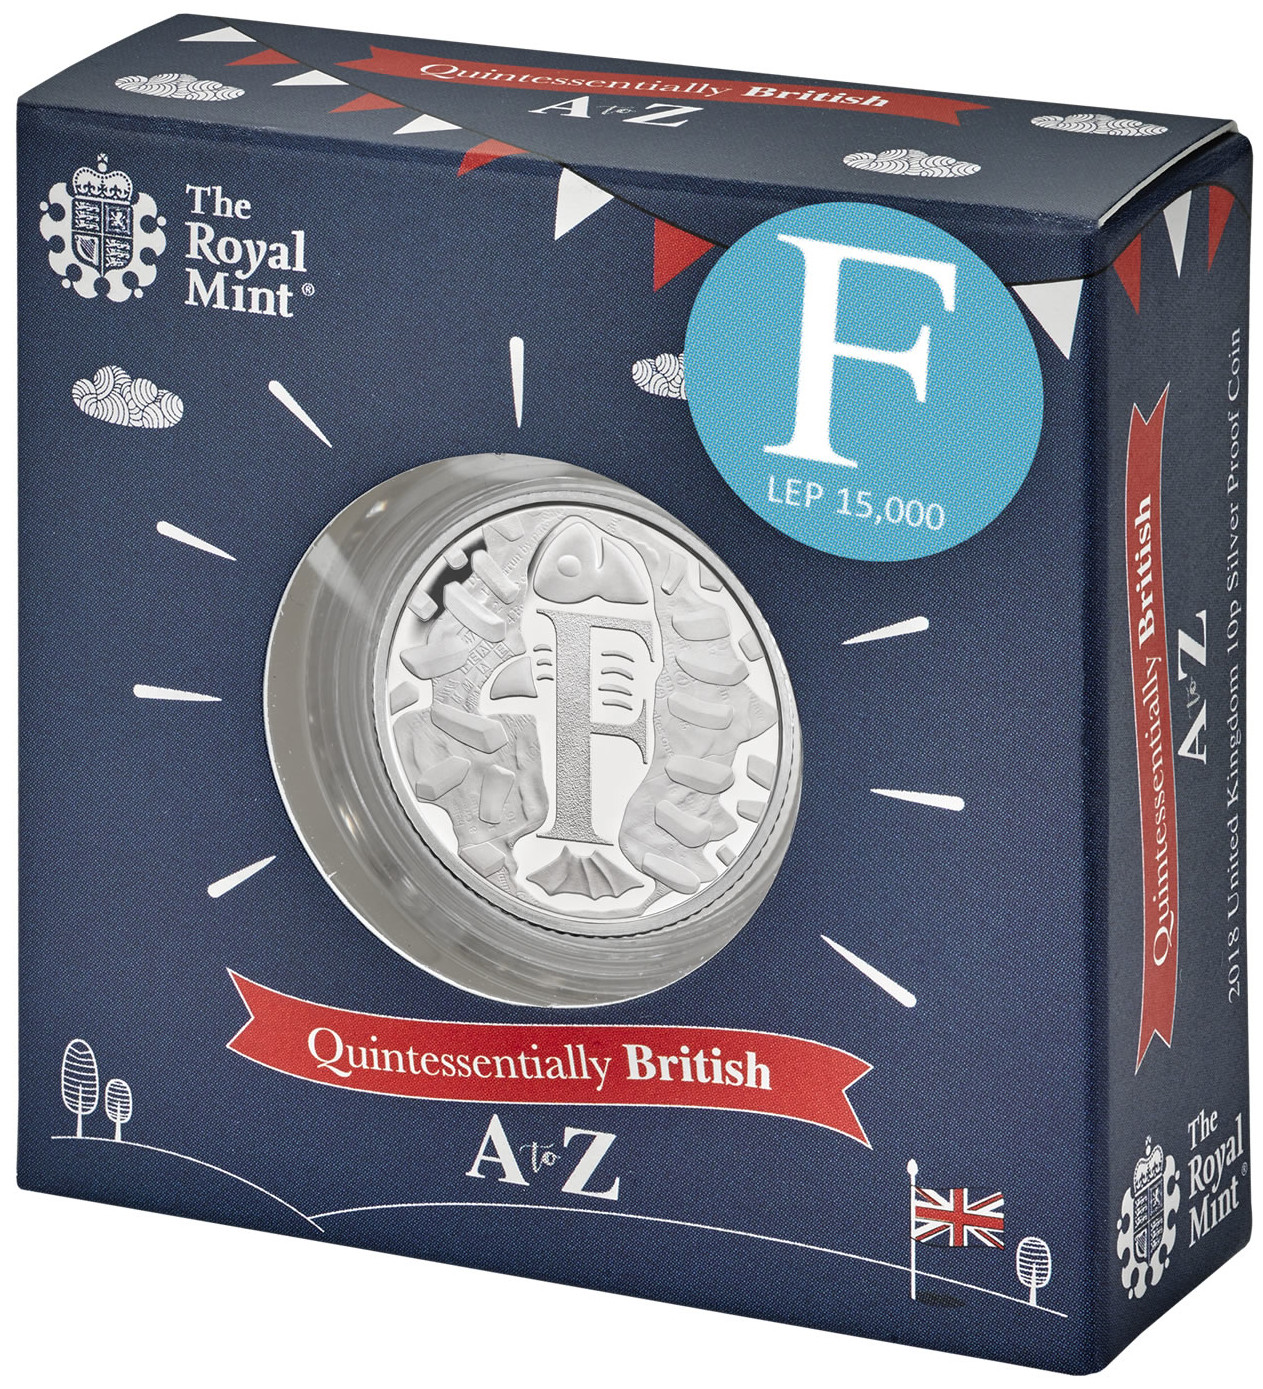 Ten Pence 2018 F - Fish and Chips: Photo F - Fish and Chips 2018 UK 10p Coin Silver Proof